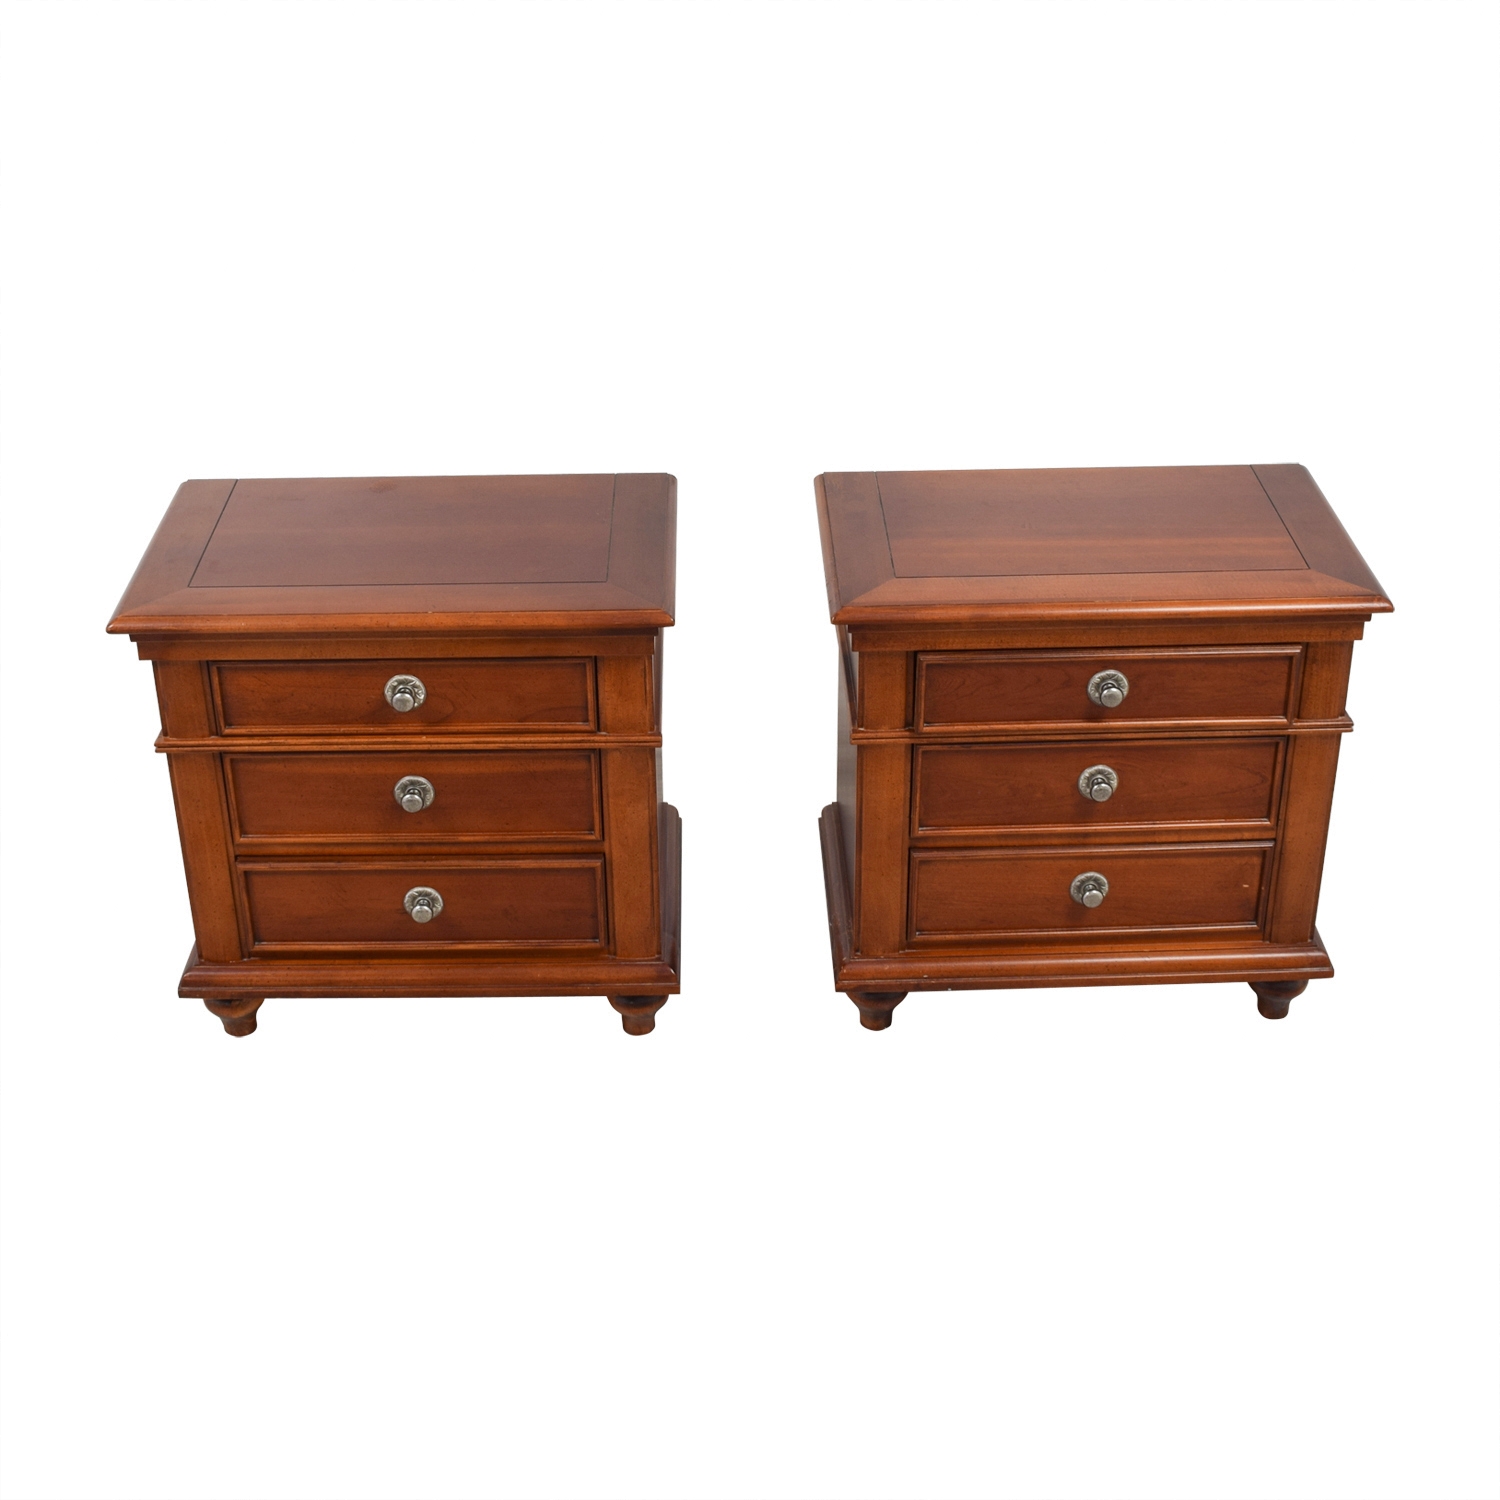 Stanley Furniture Stanley Furniture Nightstands discount